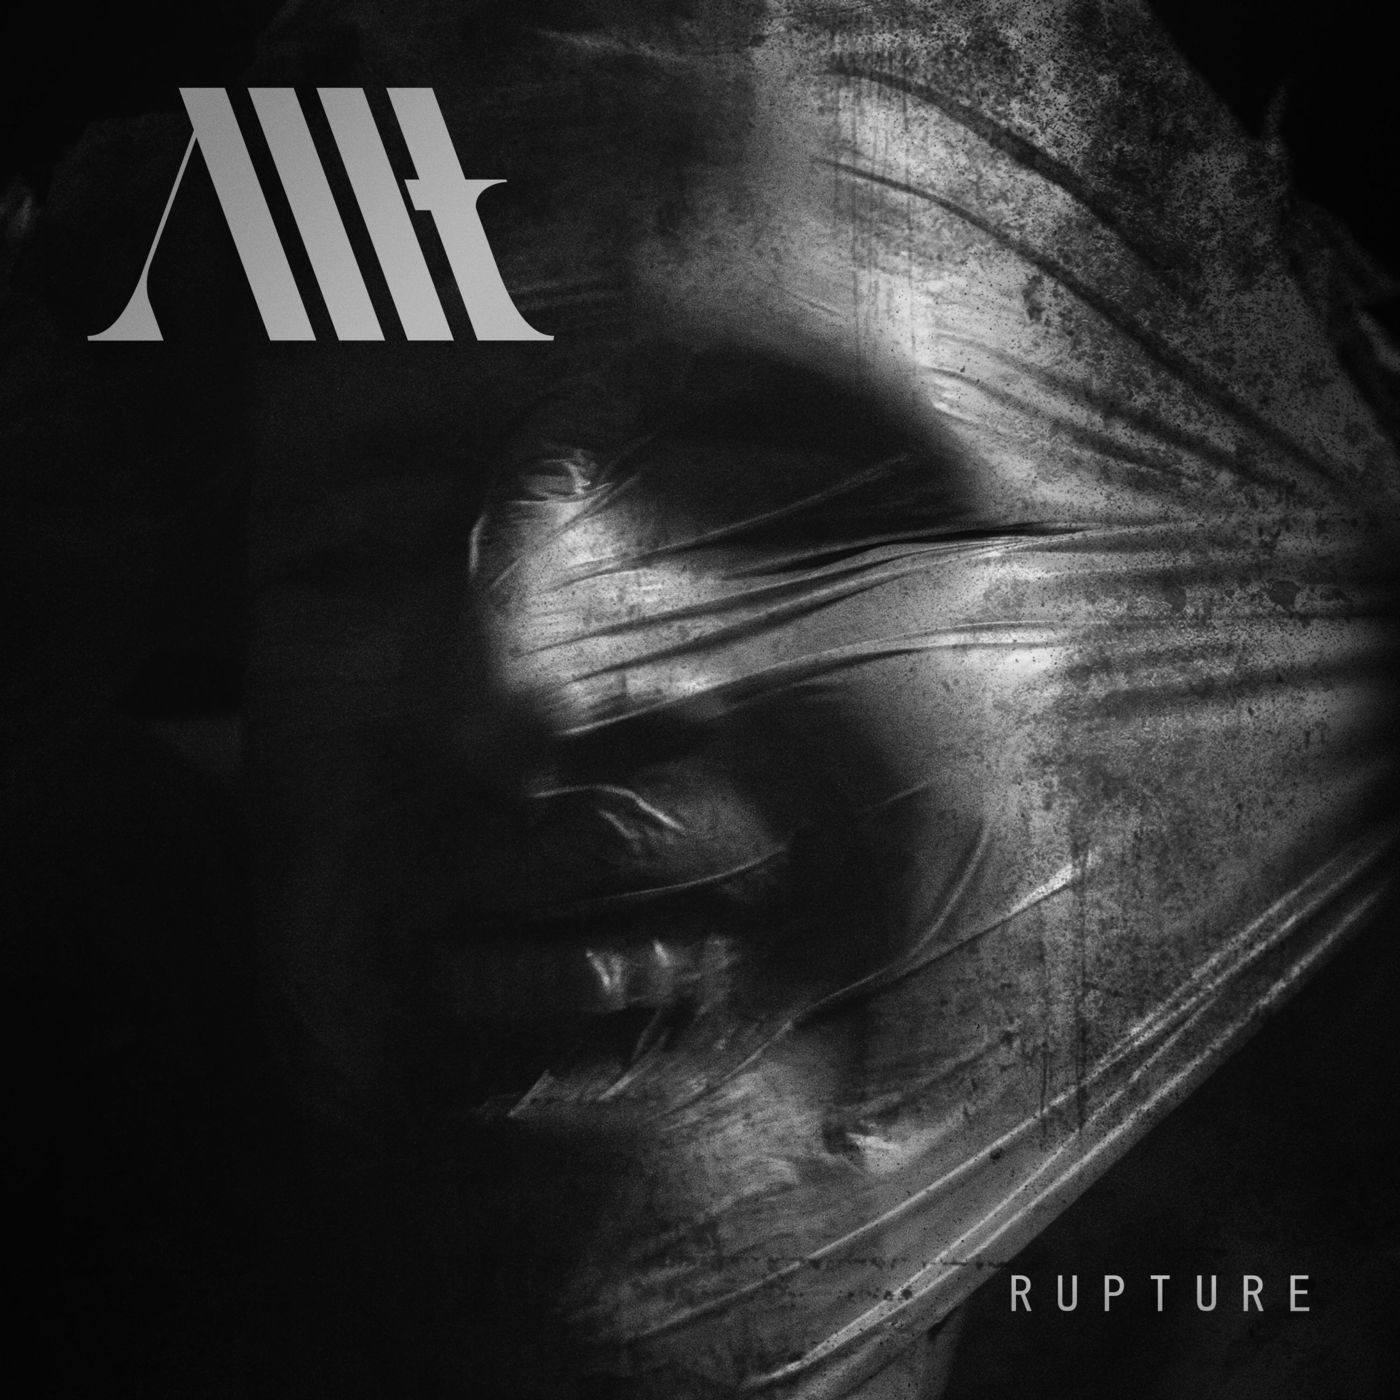 Allt - Rupture [single] (2021)